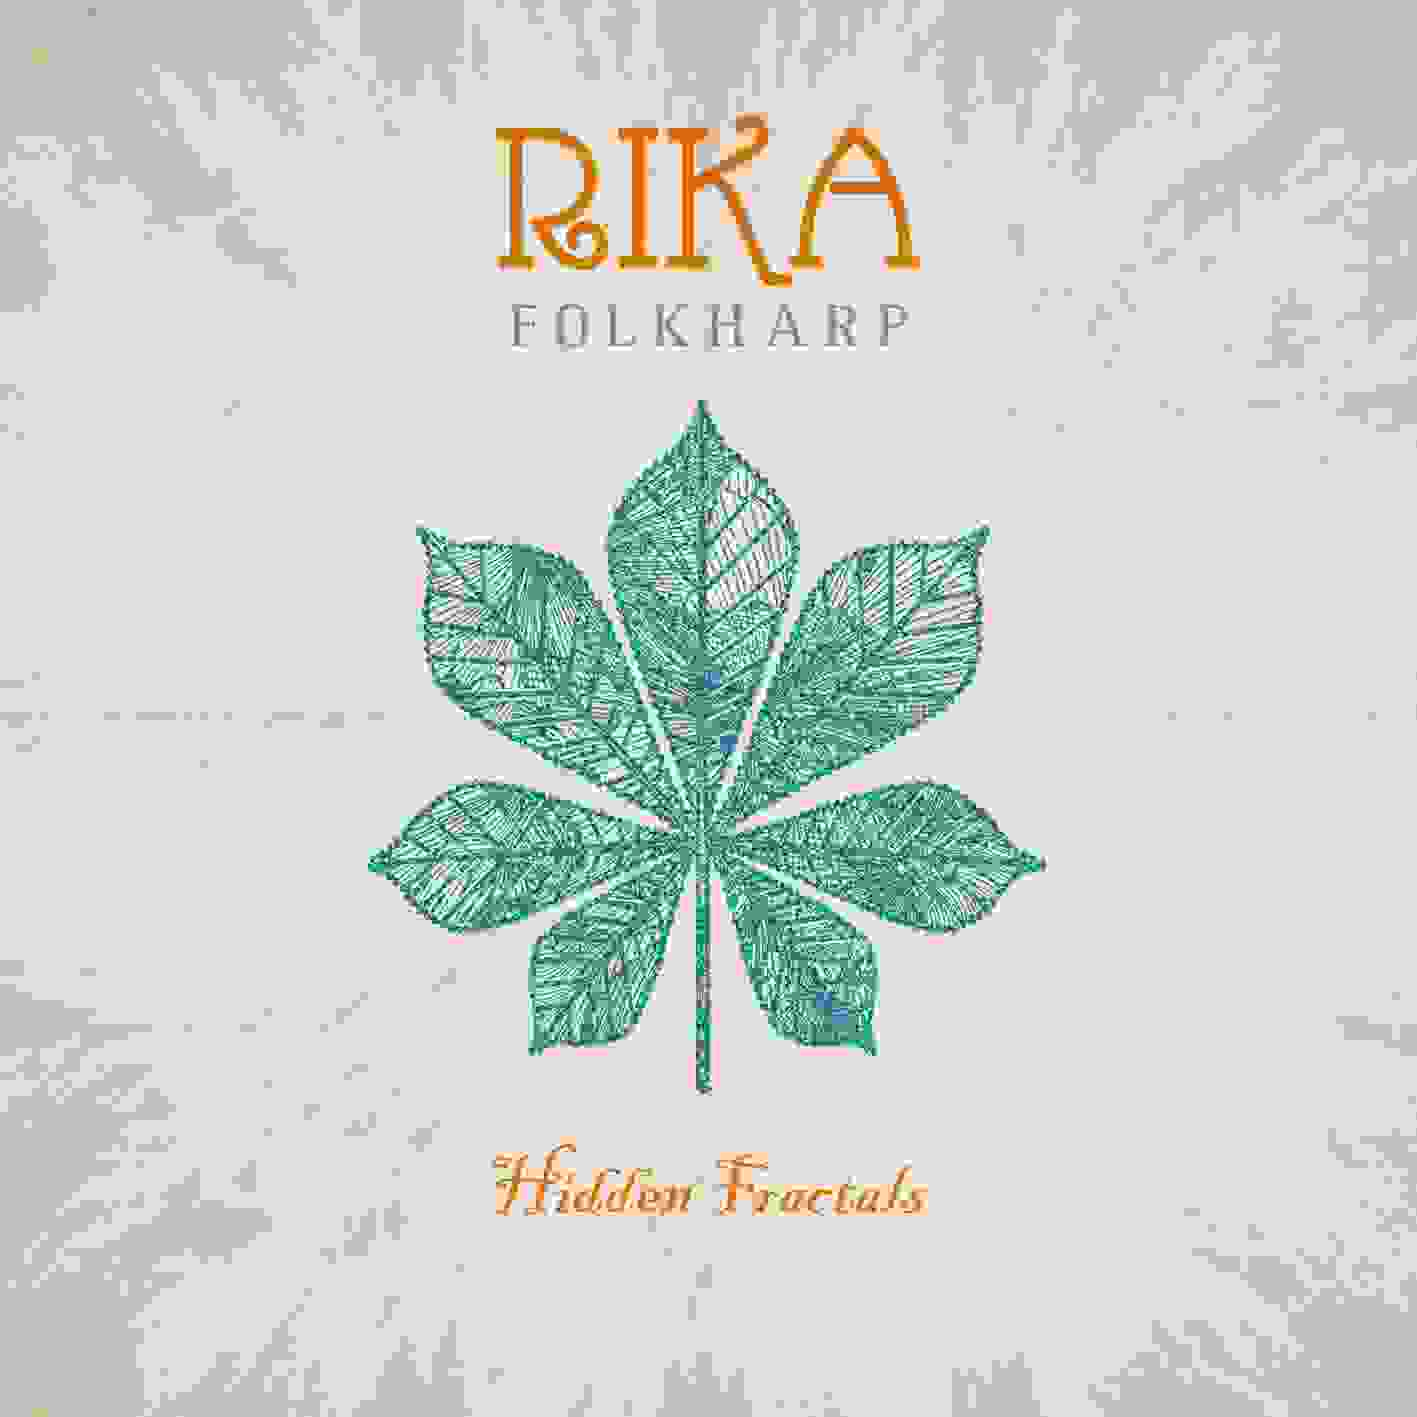 Rika folkharp Hidden Fractals CD Cover front